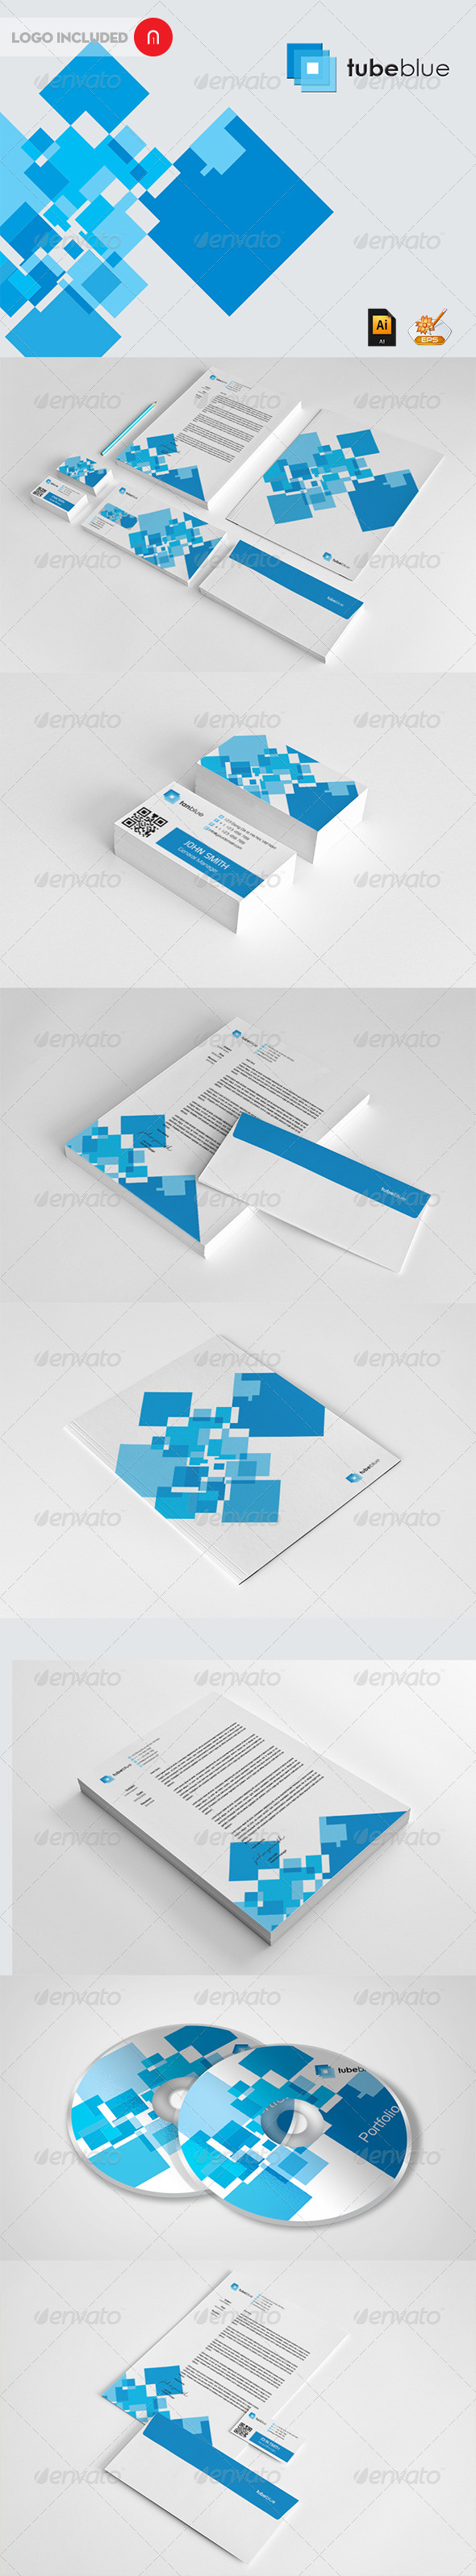 Stationary & Identity - Tube Blue - Stationery Print Templates